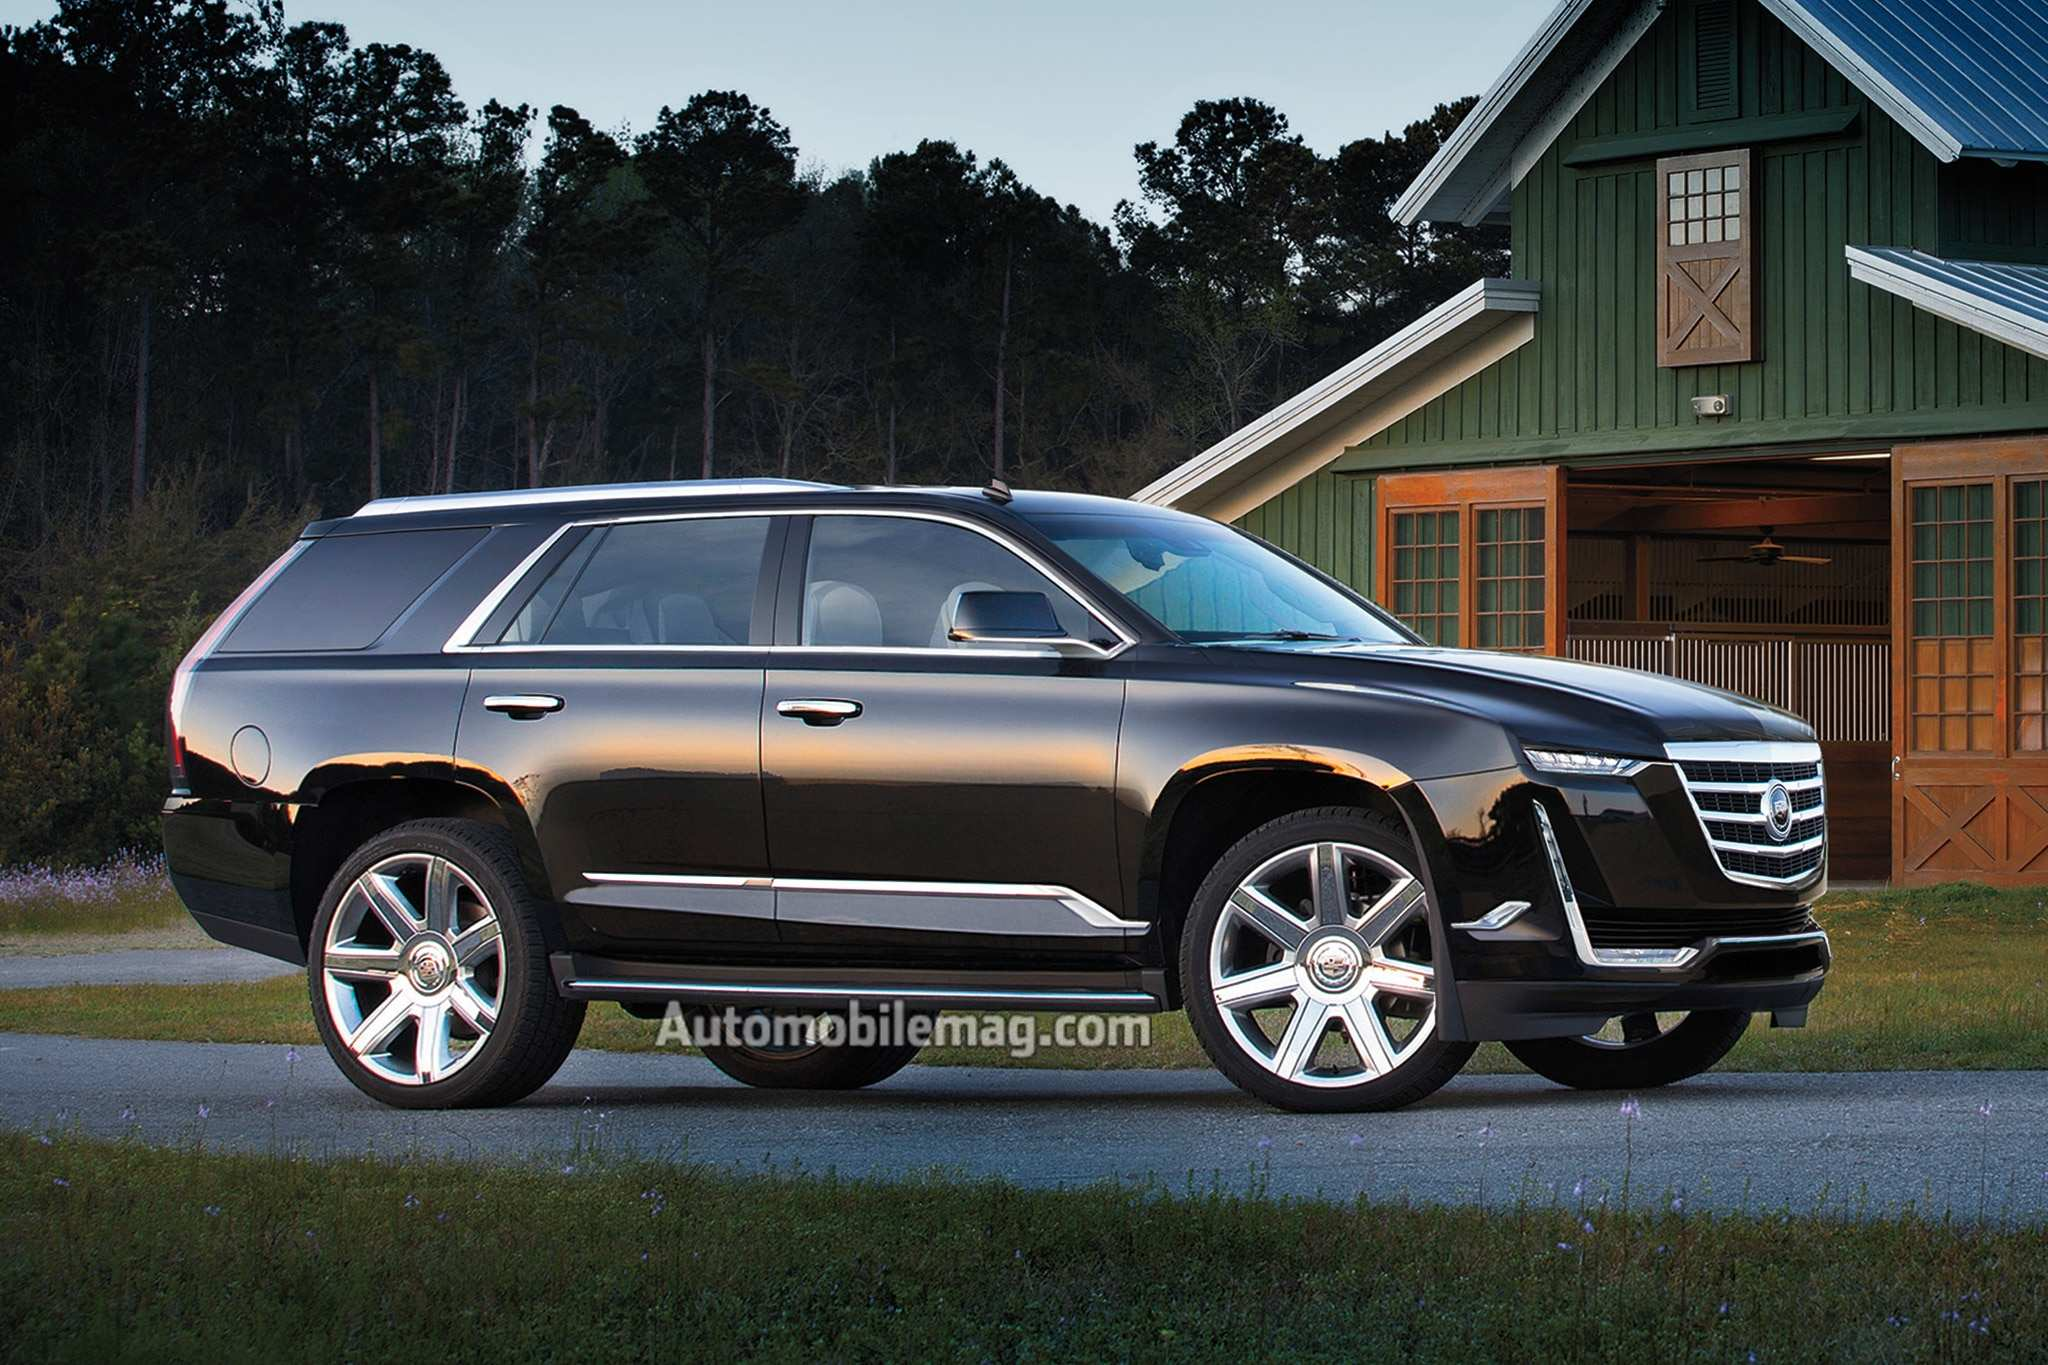 89 A When Will The 2020 Cadillac Escalade Be Released Rumors